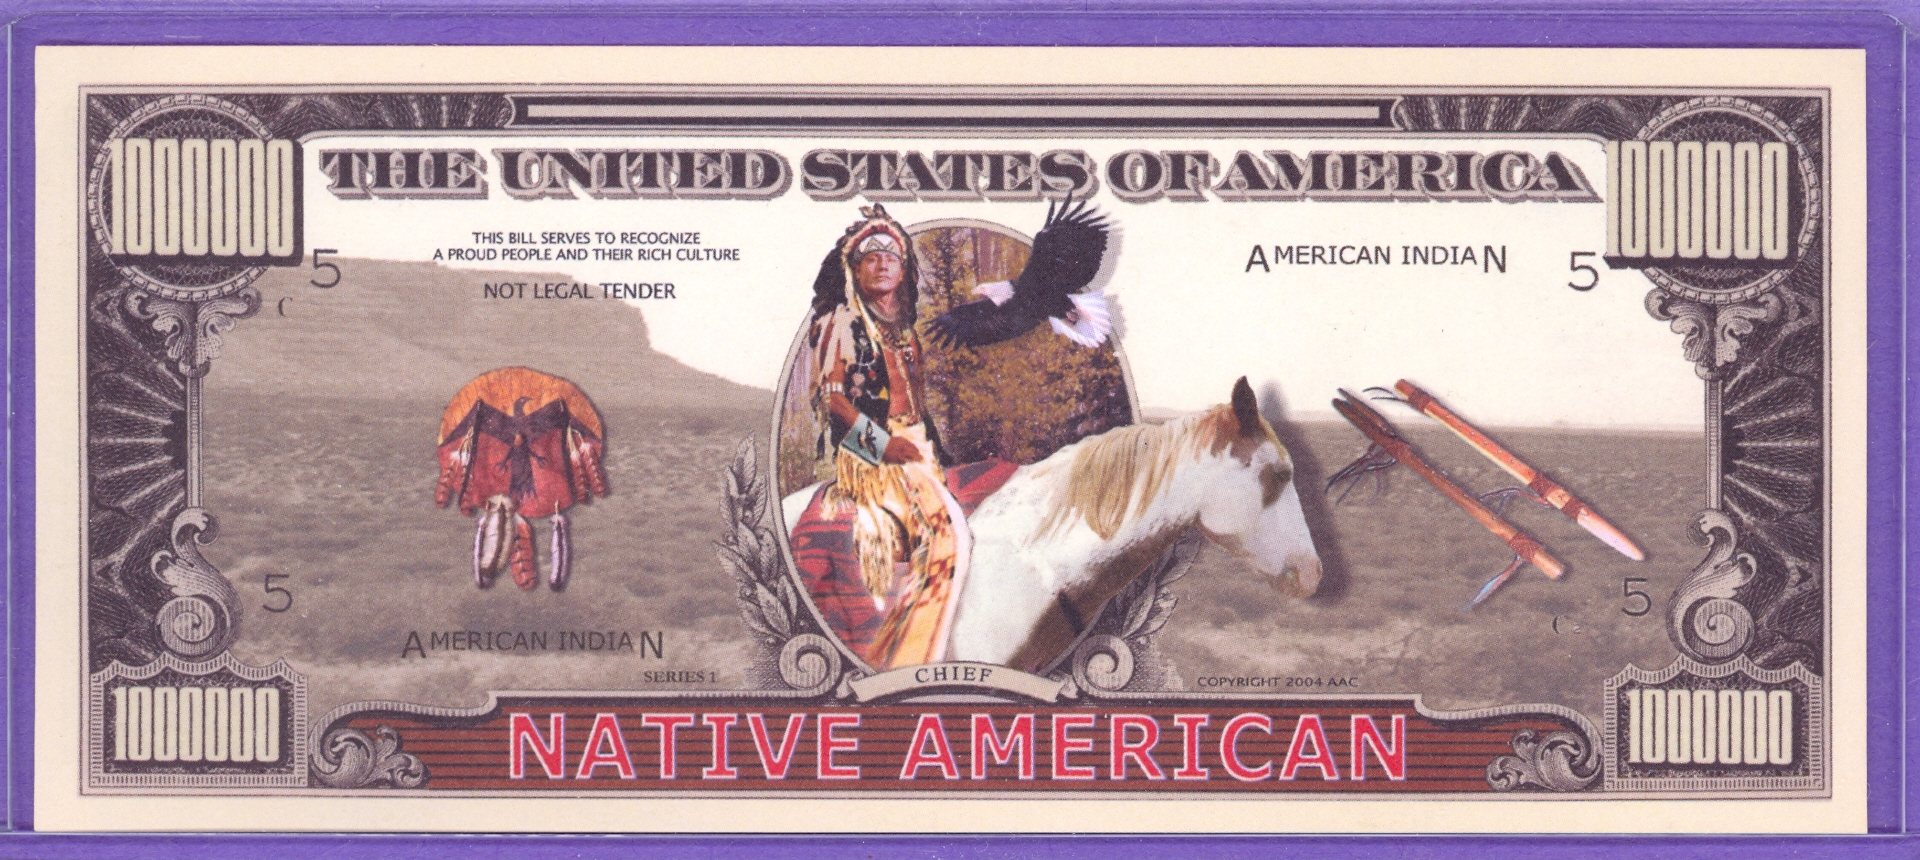 Native American $1,000,000 Novelty or Fantasy Money